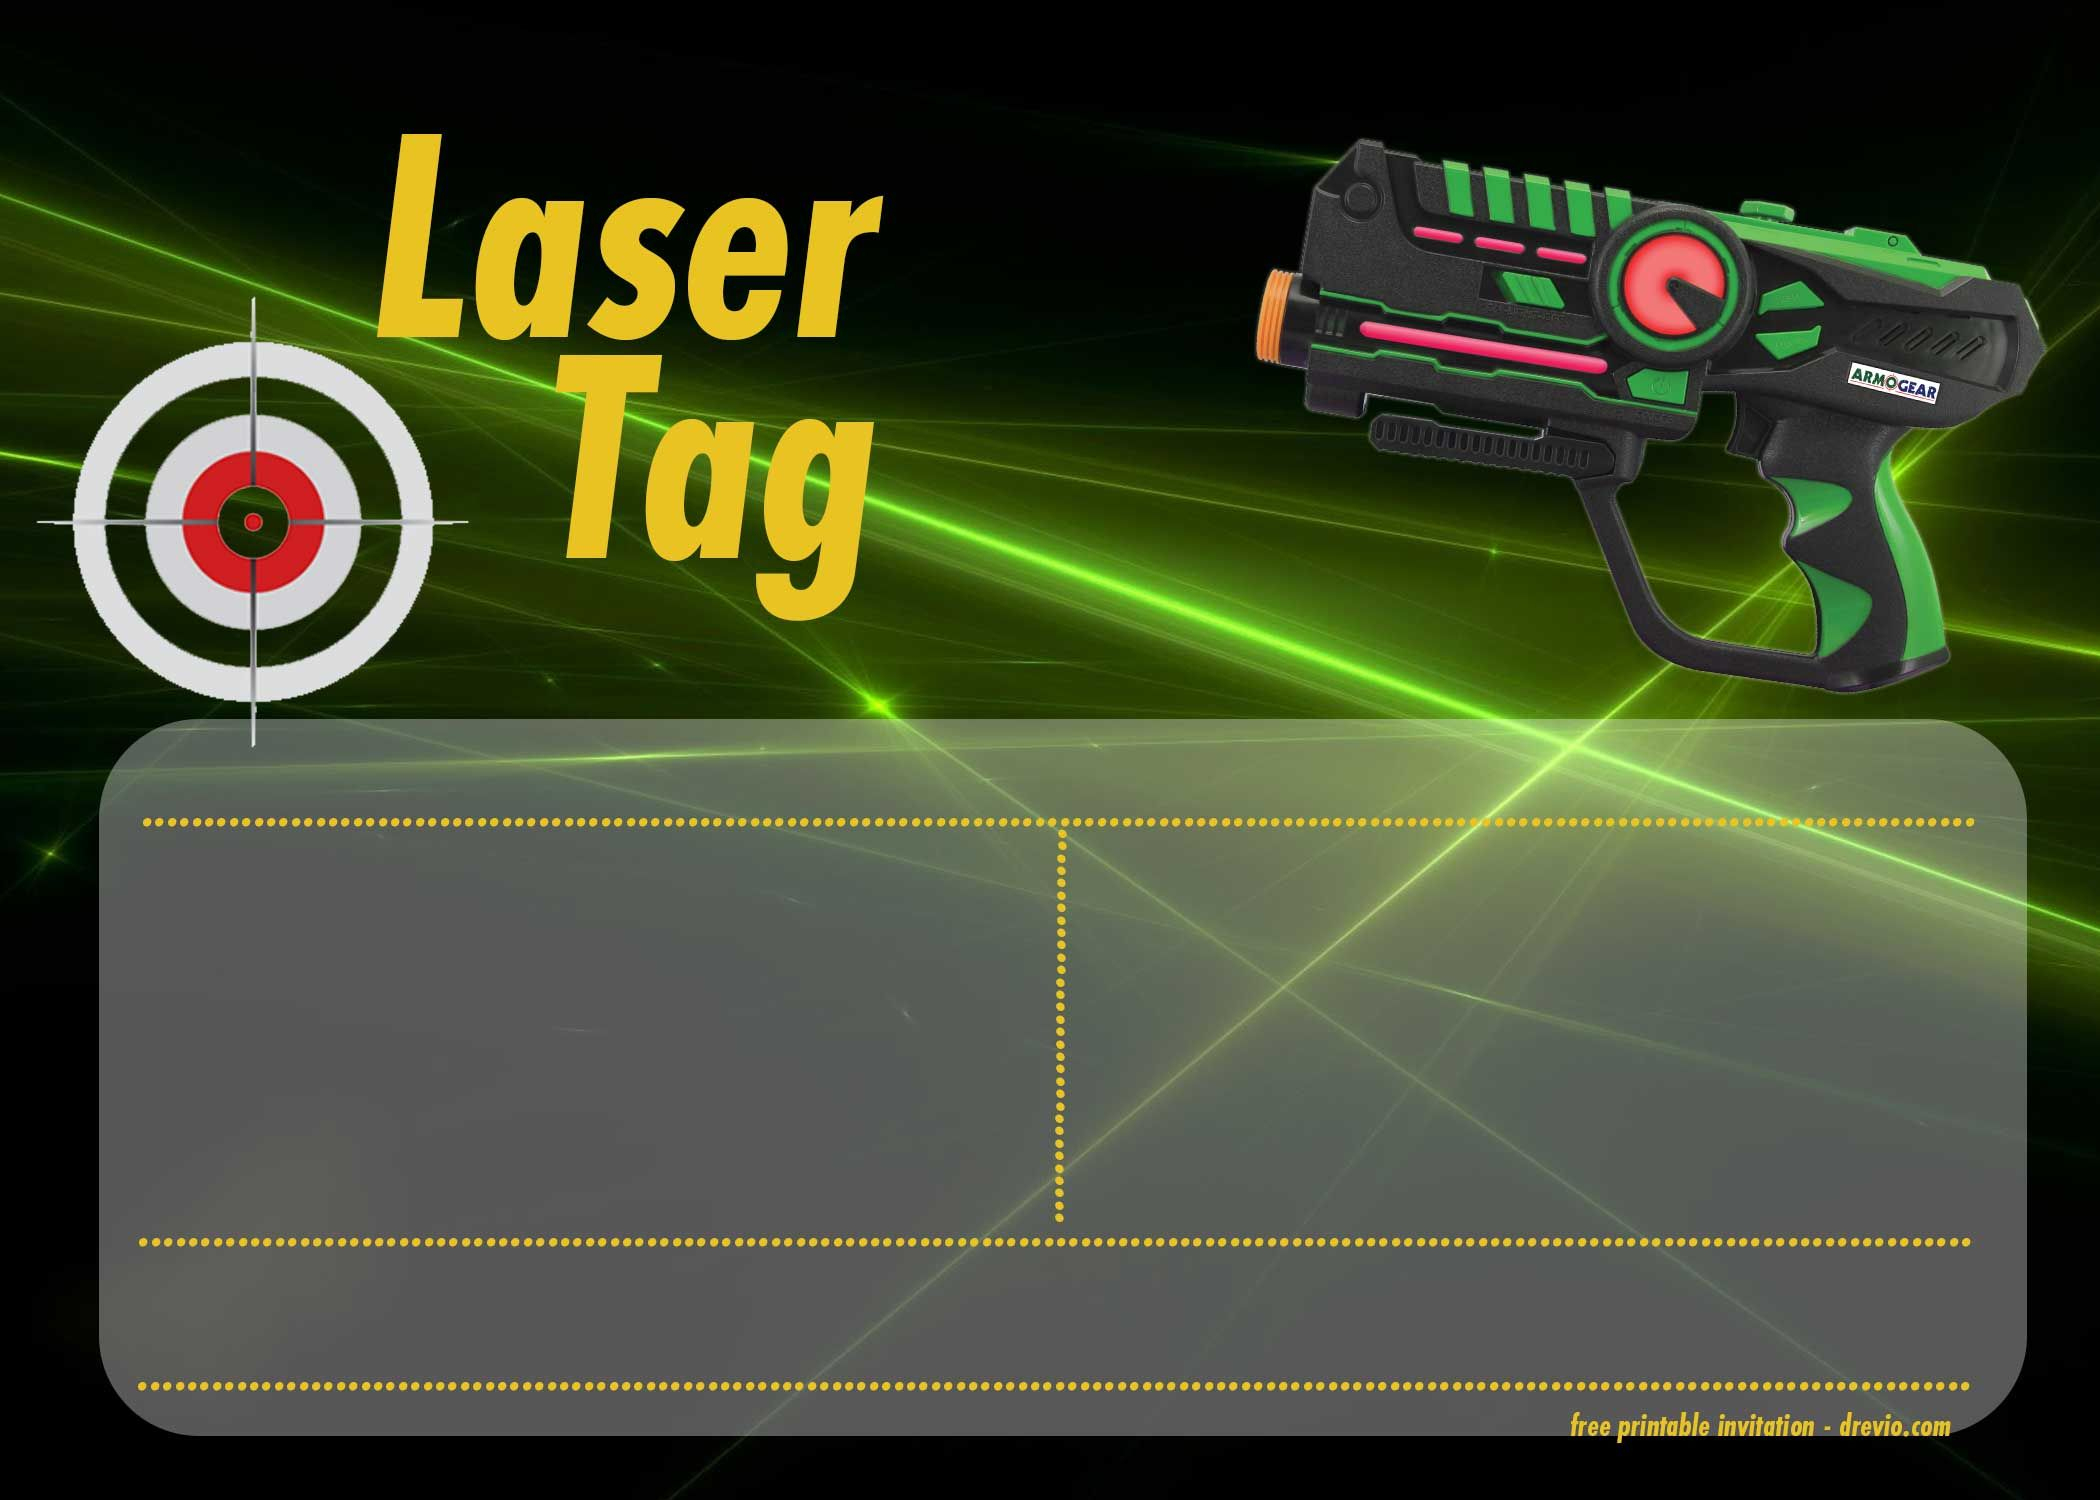 Free Printable Laser Tag Invitation Templates | Boys Party Ideas - Free Printable Laser Tag Invitation Template